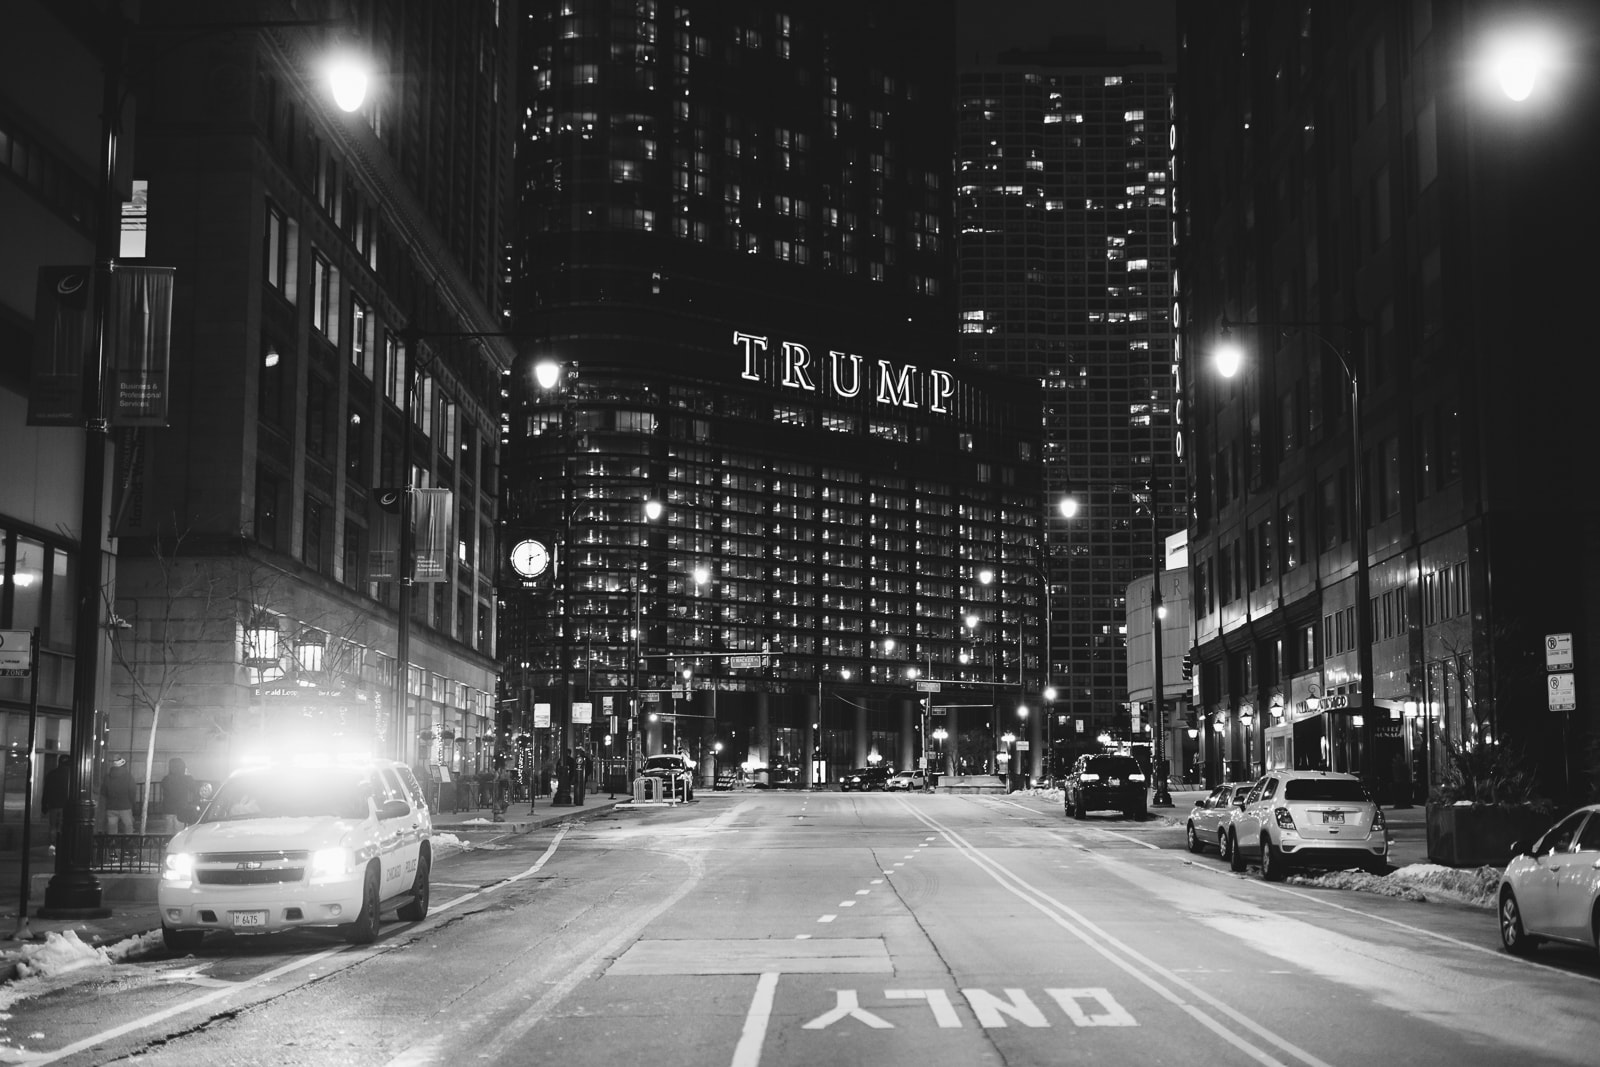 Trump building and the empty streets of Chicago at Night, 2020